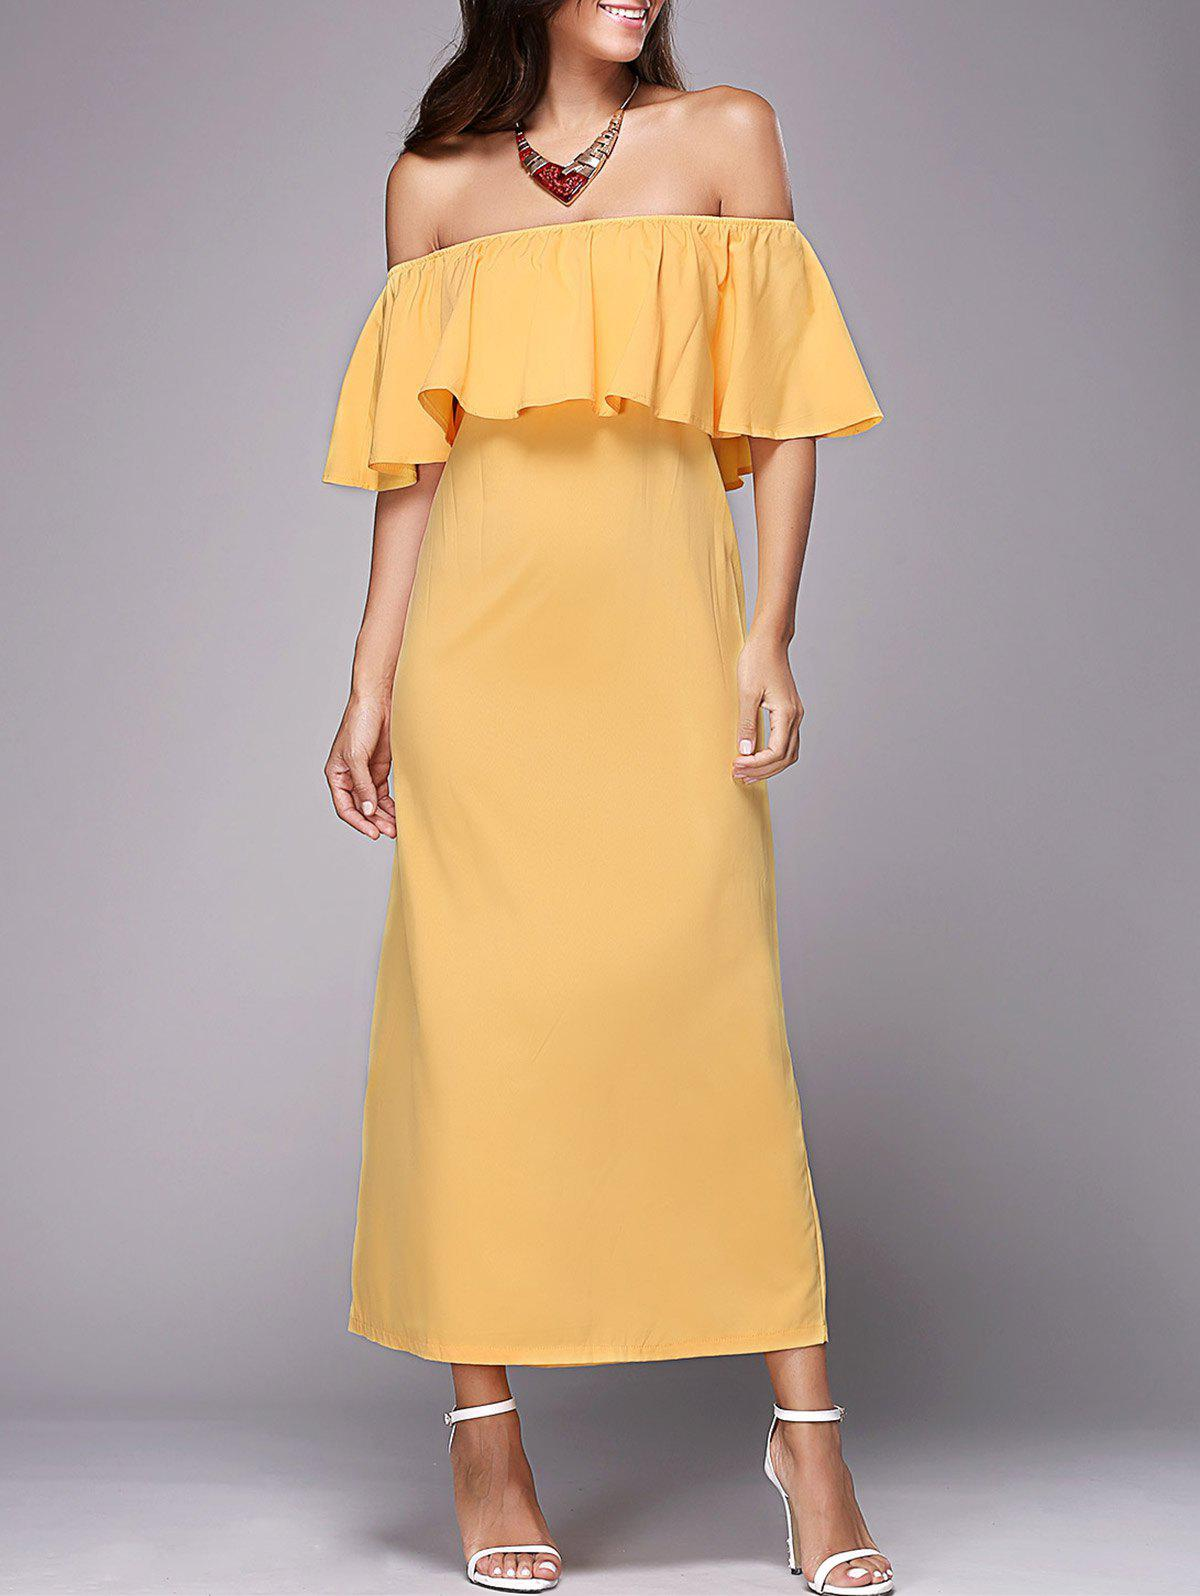 Sexy Off-The-Shoulder Short Sleeve Solid Color Flounced Women's Dress - YELLOW M